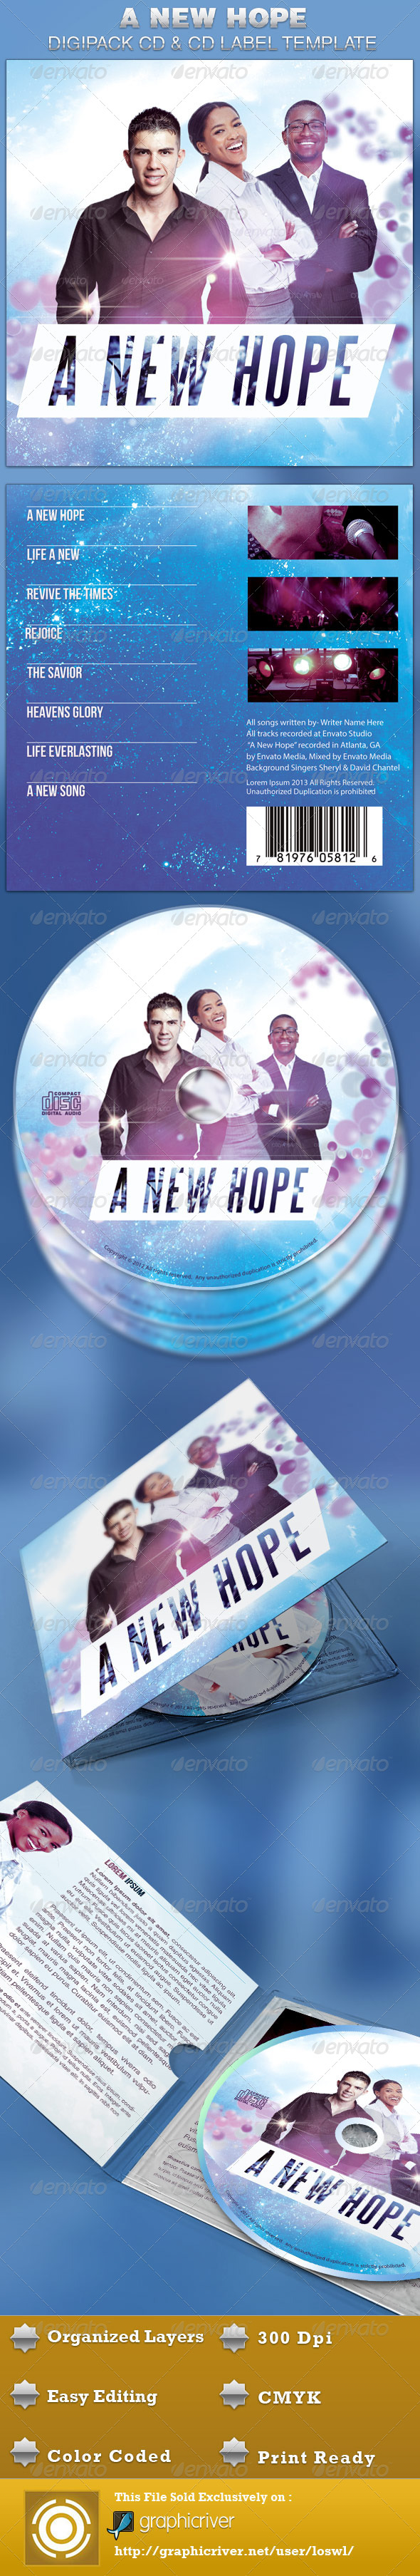 A New Hope Digipack CD Artwork Template  - CD & DVD artwork Print Templates